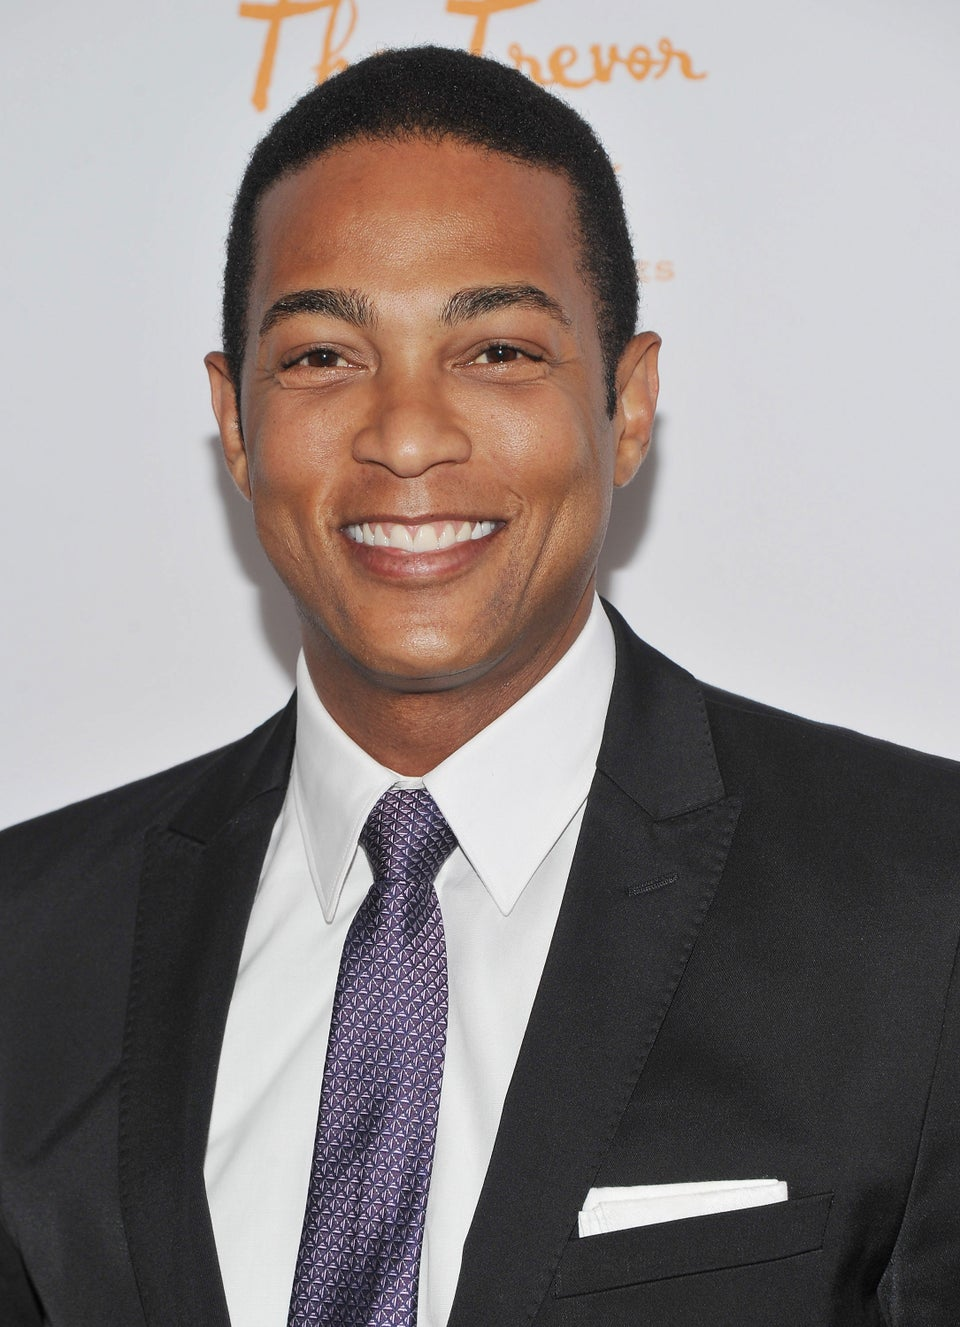 5 Questions with CNN's Don Lemon on Whitney Houston, Addiction, and the 'Death of a Diva'